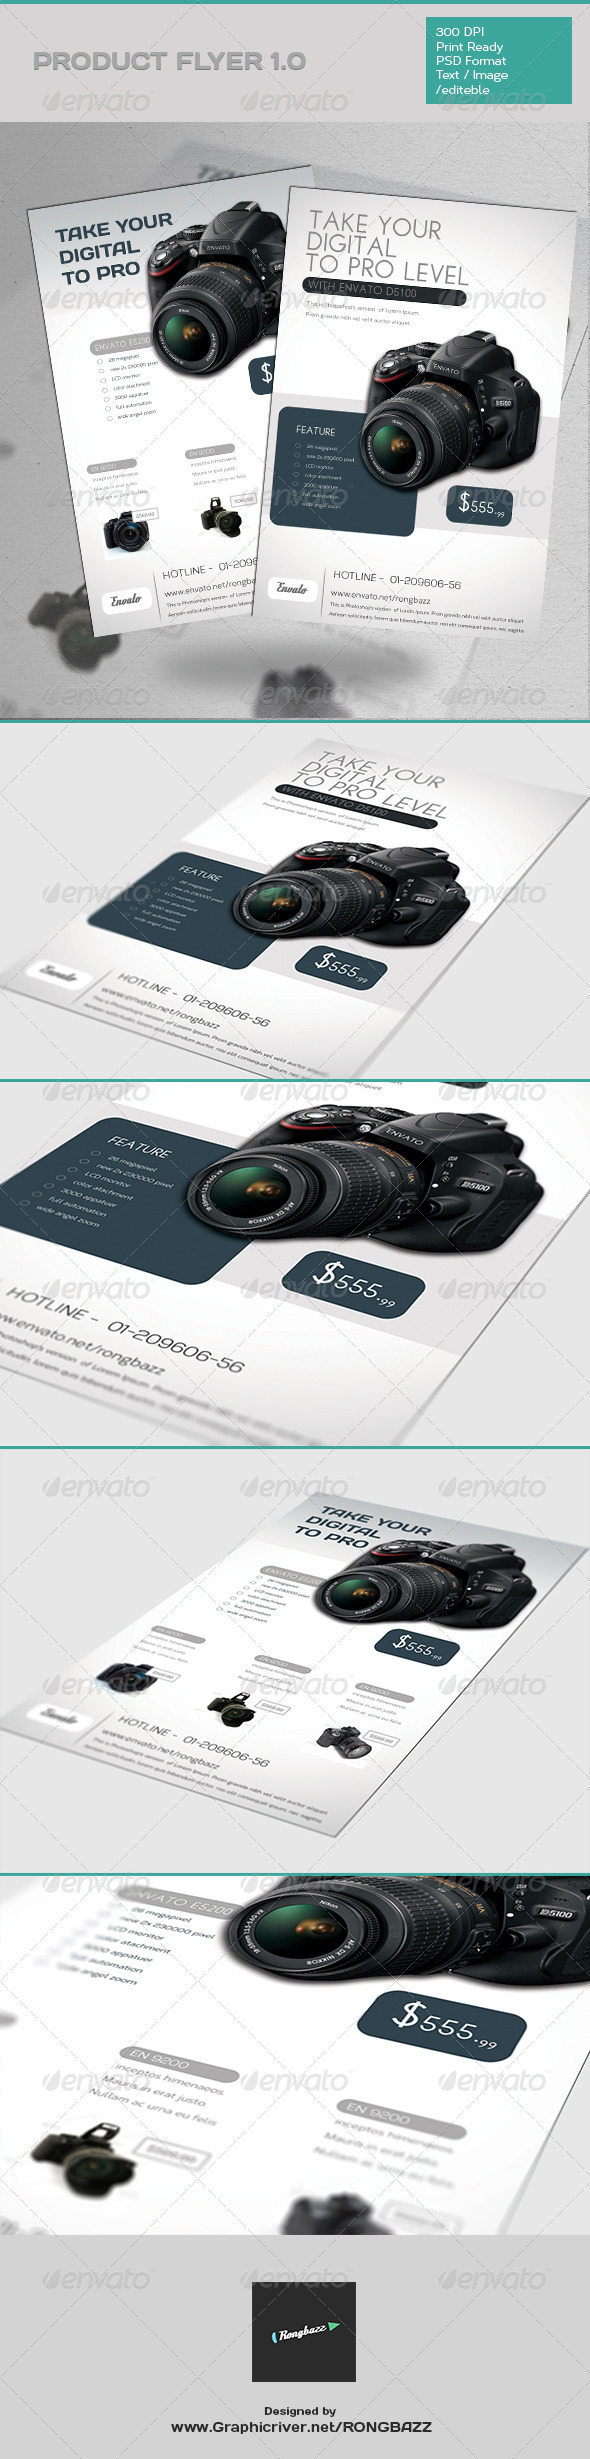 GraphicRiver Product Flyer 2.0 7931876